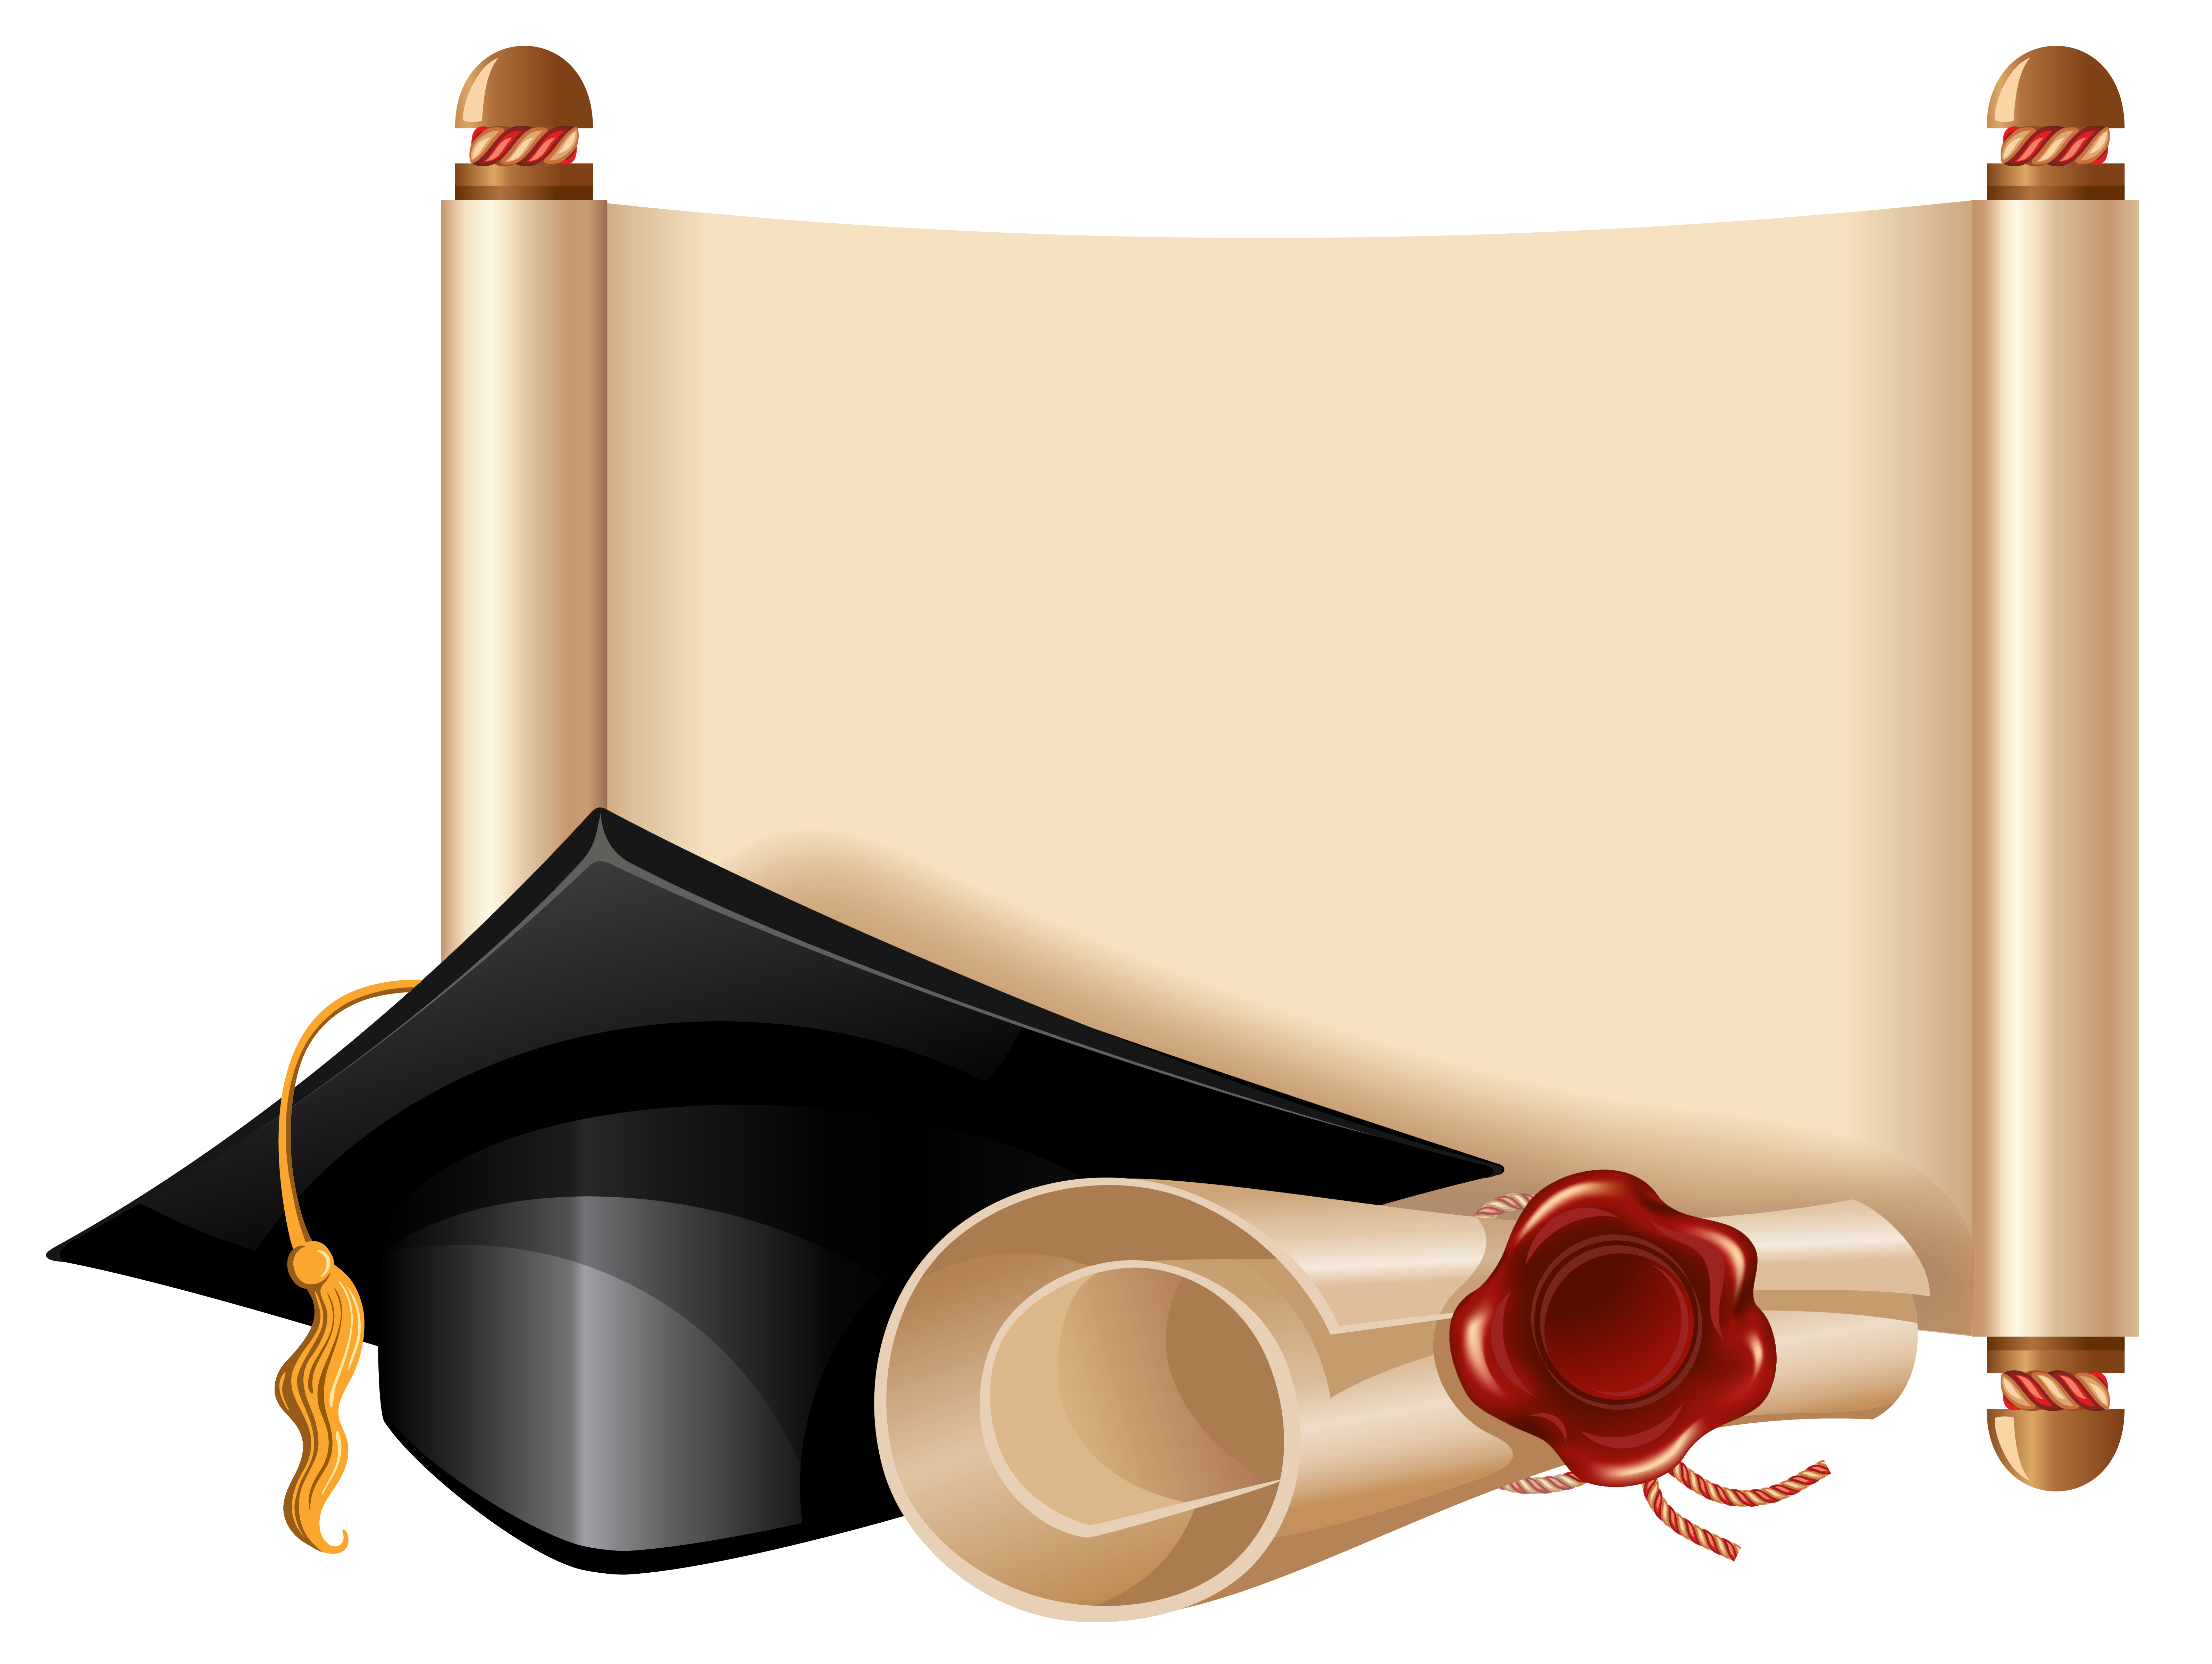 Graduation png images. Diploma and cap clipart